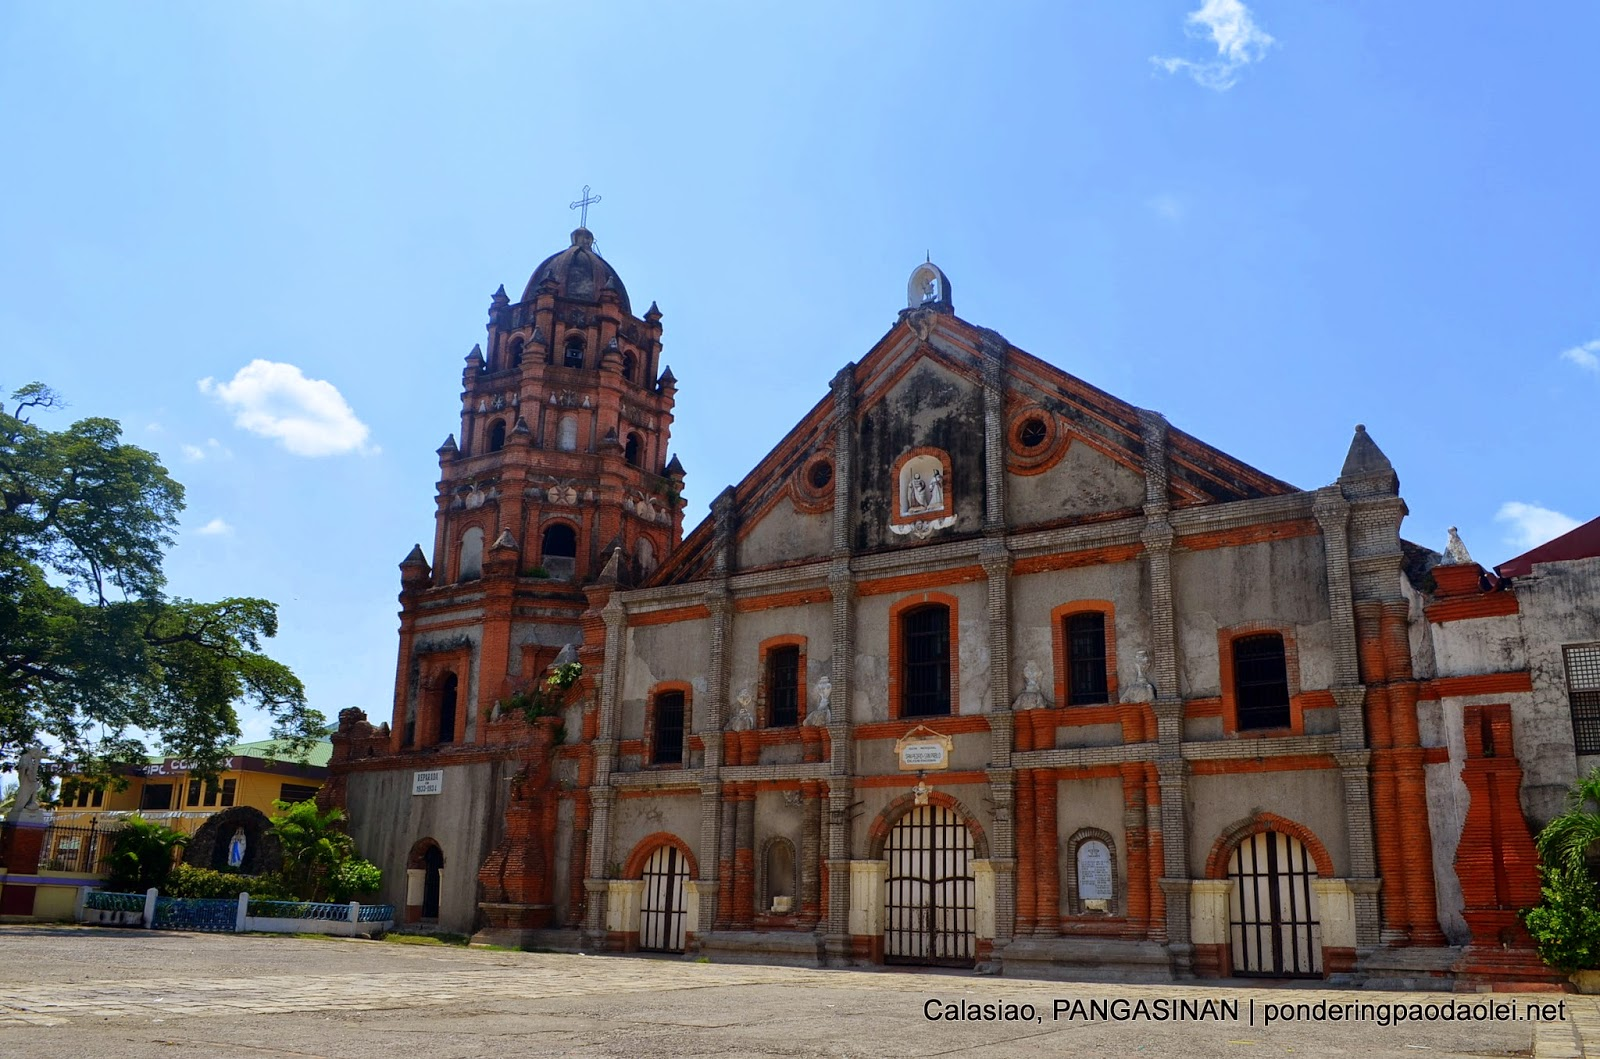 The Jaw-Dropping Calasiao Church